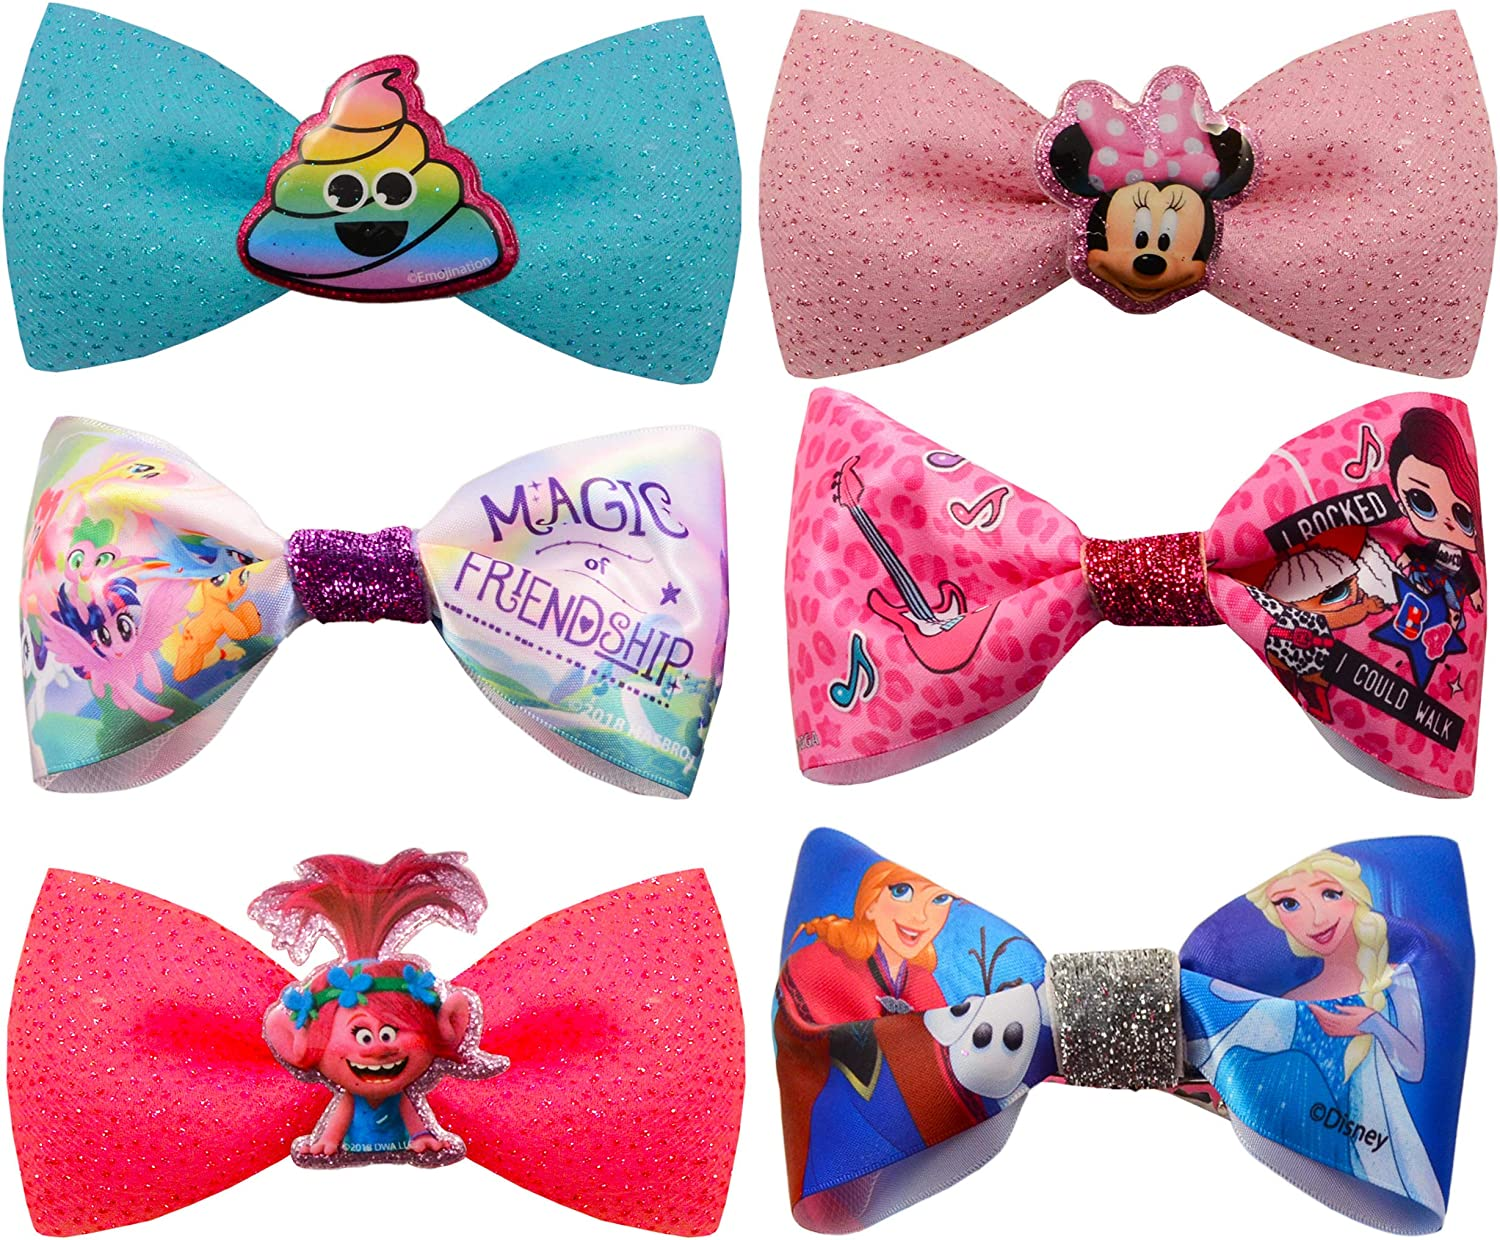 My Little Pony Minnie Mouse 6 Pack Girls Hair Bows Hair Clips Featuring Disney Frozen Trolls Girls Party Supplies Girls Hair Accessories Set Girls Party Favors Bundles LOL Dolls and Emojis